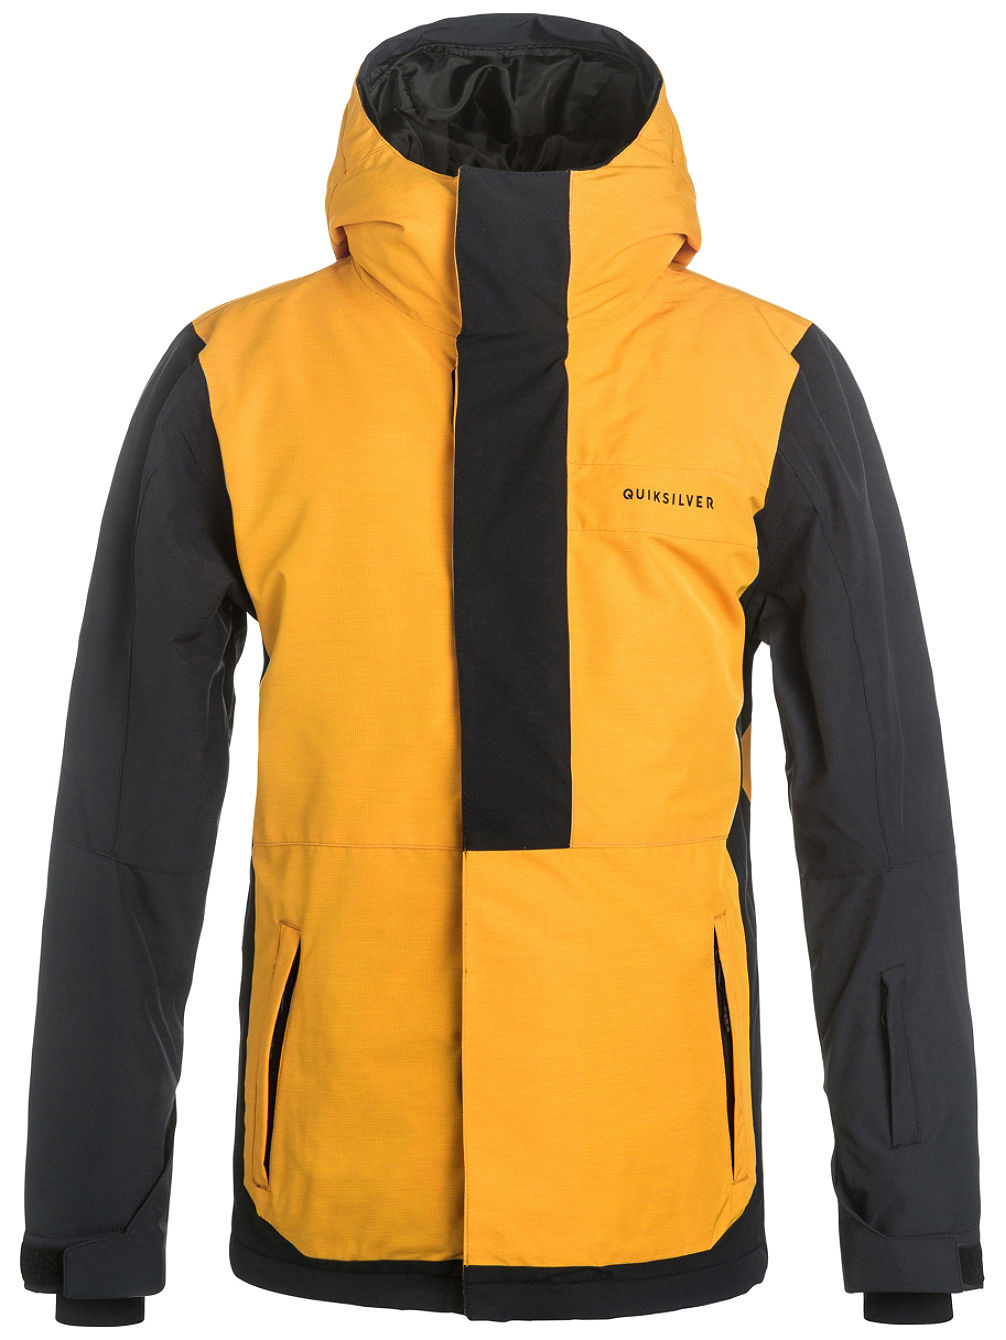 Buy Quiksilver Ambition Jacket Boys Online At Blue-tomato.com